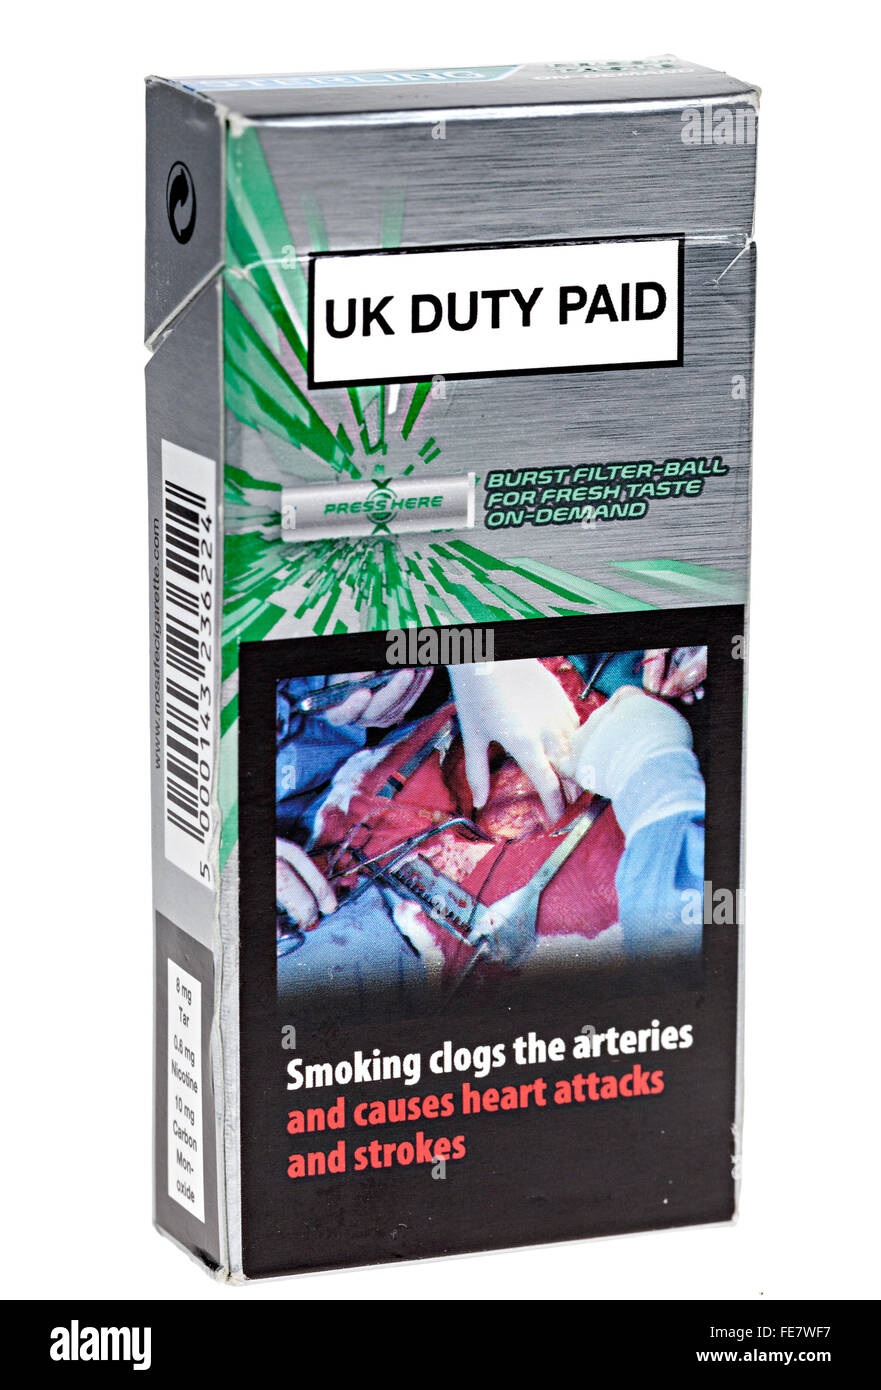 Cigarette packet with warning about smoking and heart attacks and UK Duty Paid - Stock Image